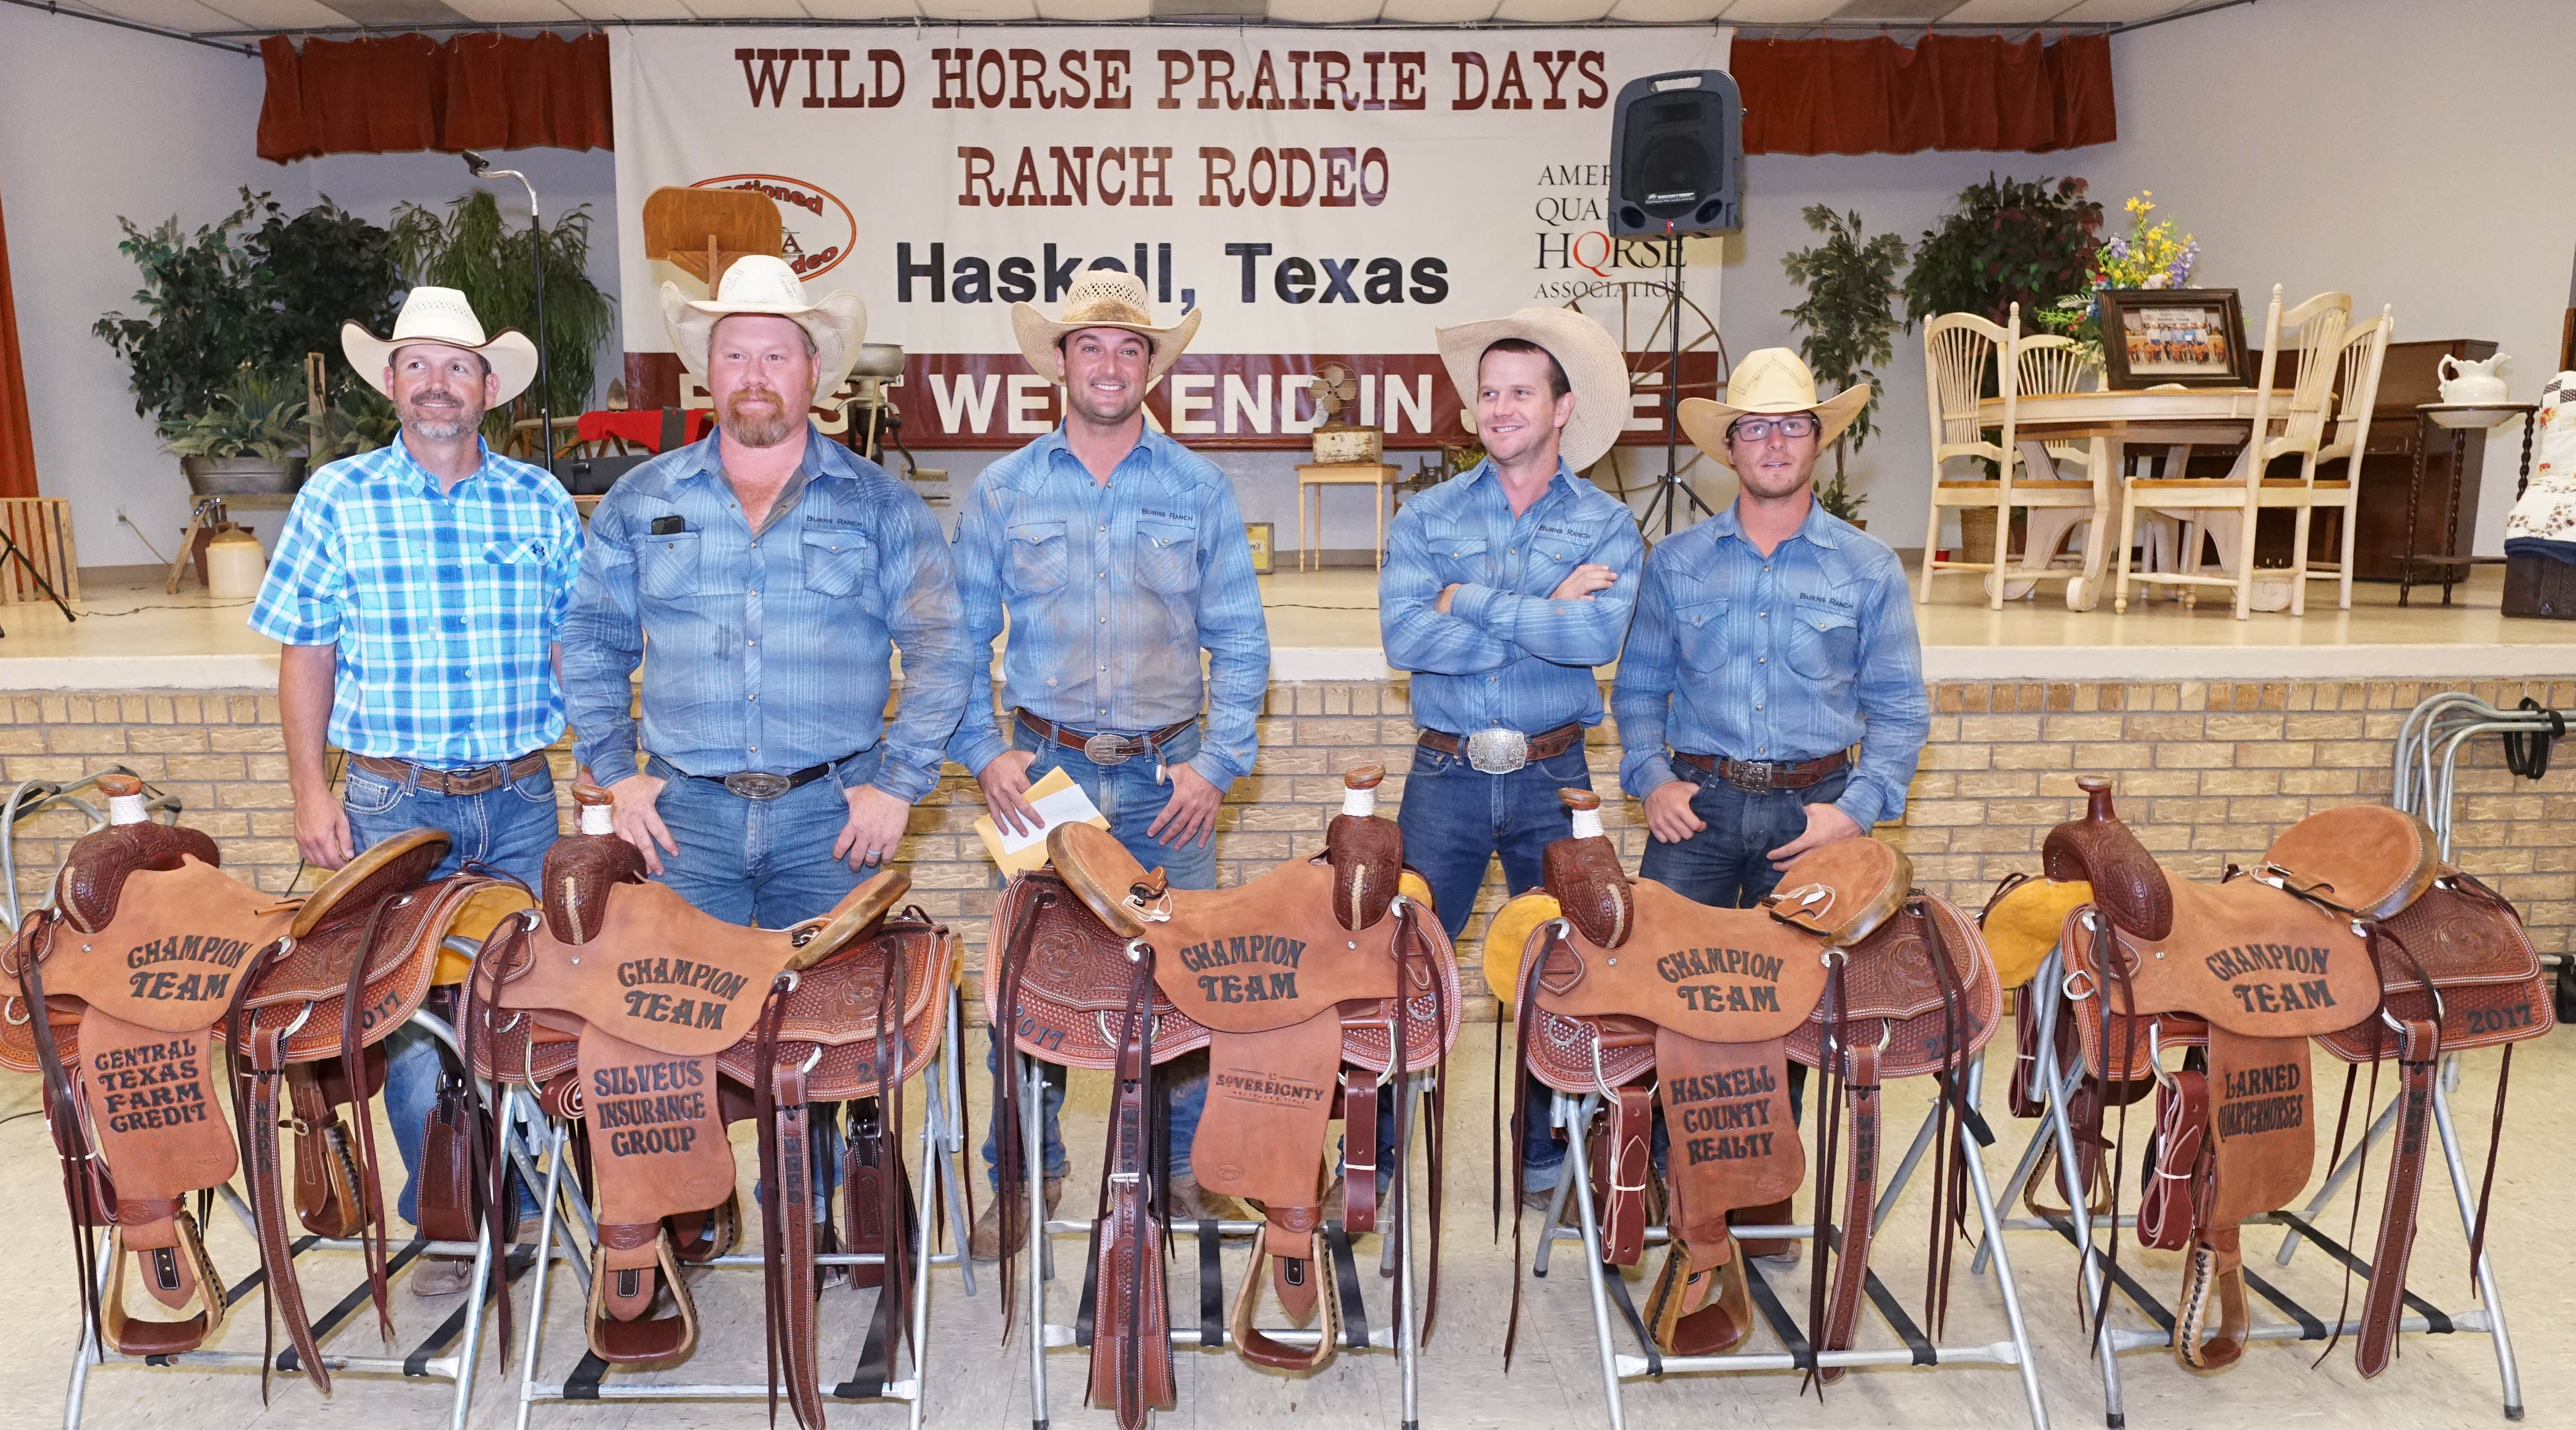 2017 Wild Horse Prairie Days Official Results Winning Team